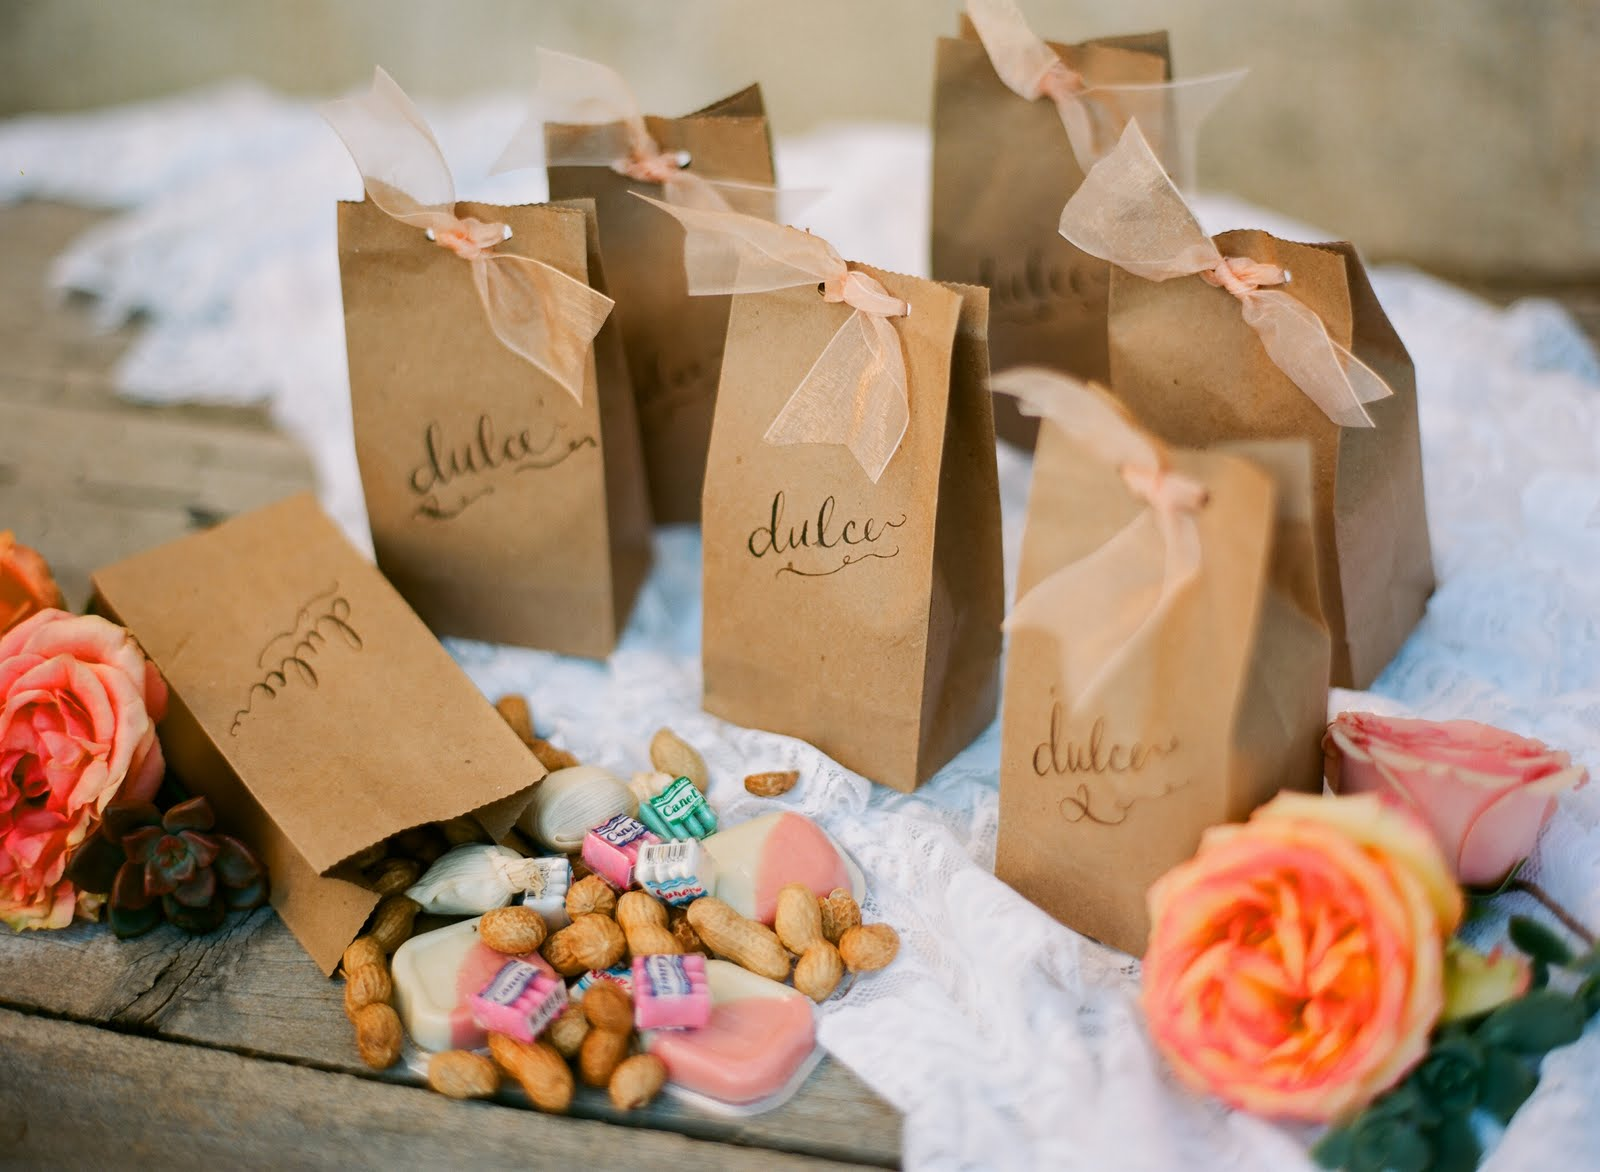 Wedding Favor Bag Ideas : Que linda eres!!!!! De verdad esa era la idea que yo ten?a en mente ...